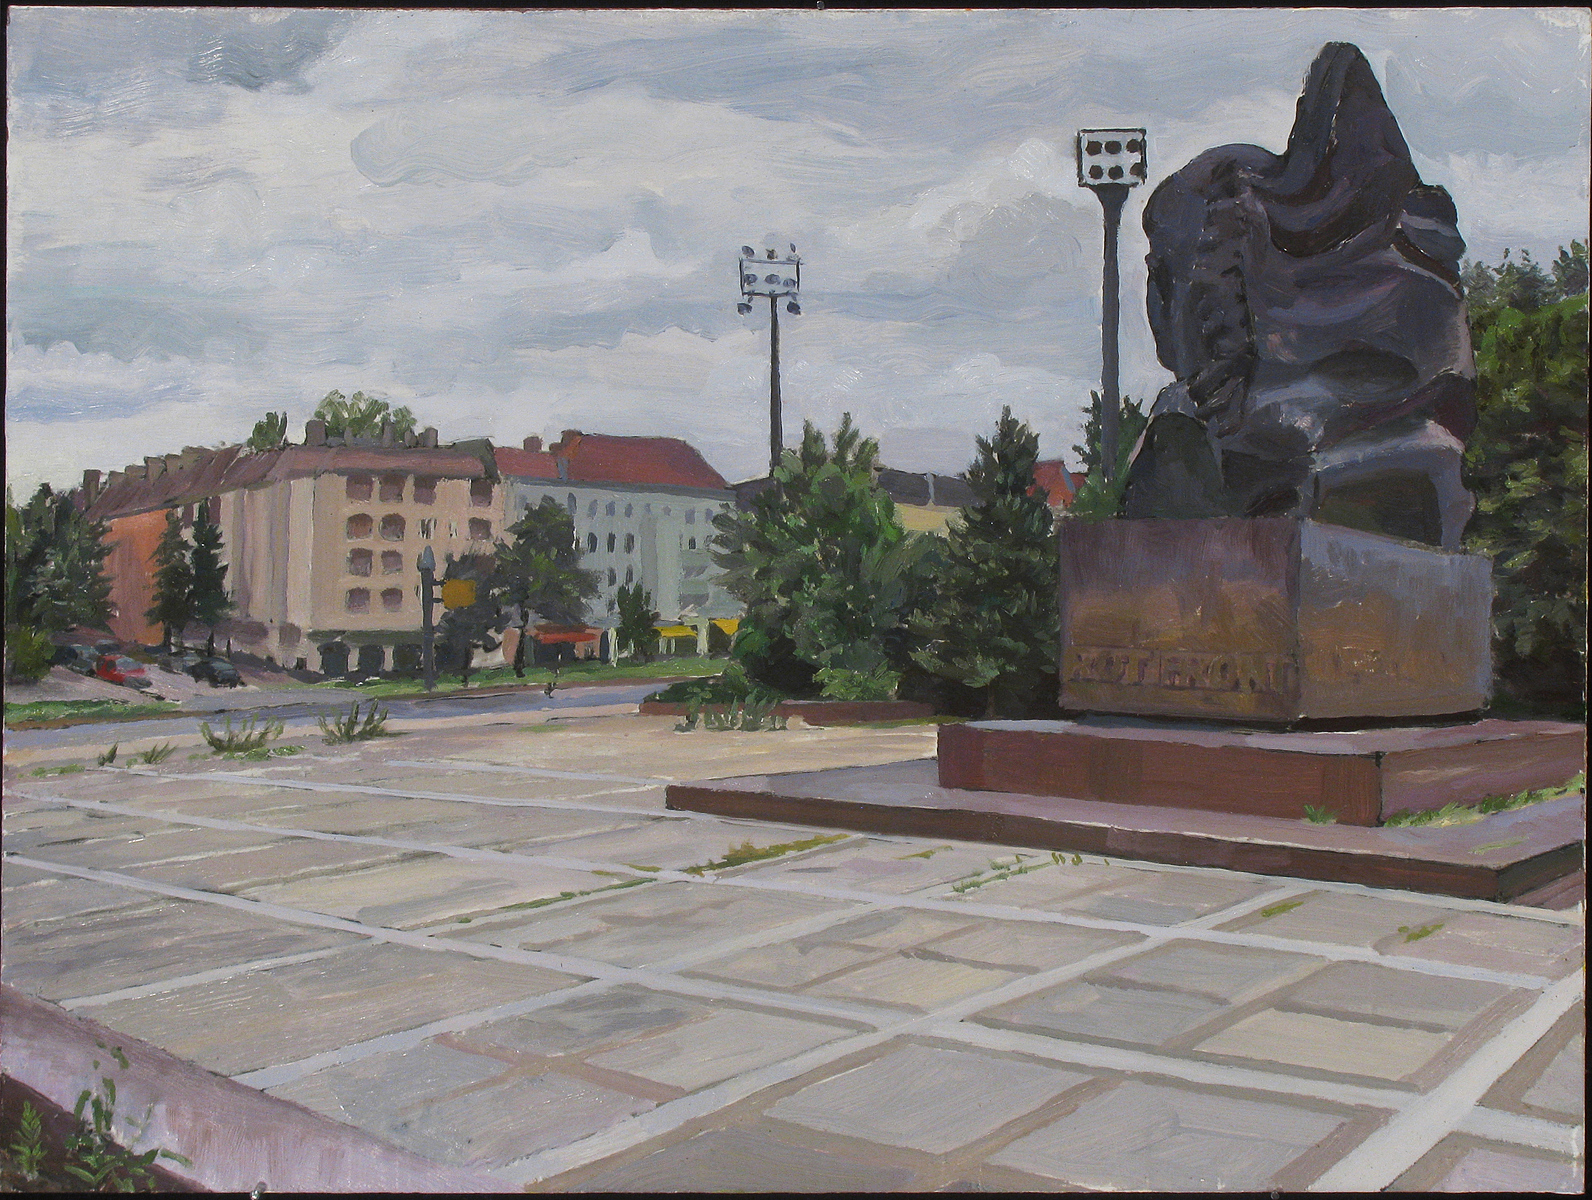 "BERLIN: ERNST THALMANN PARK oil on panel 12 x16"" 2013"